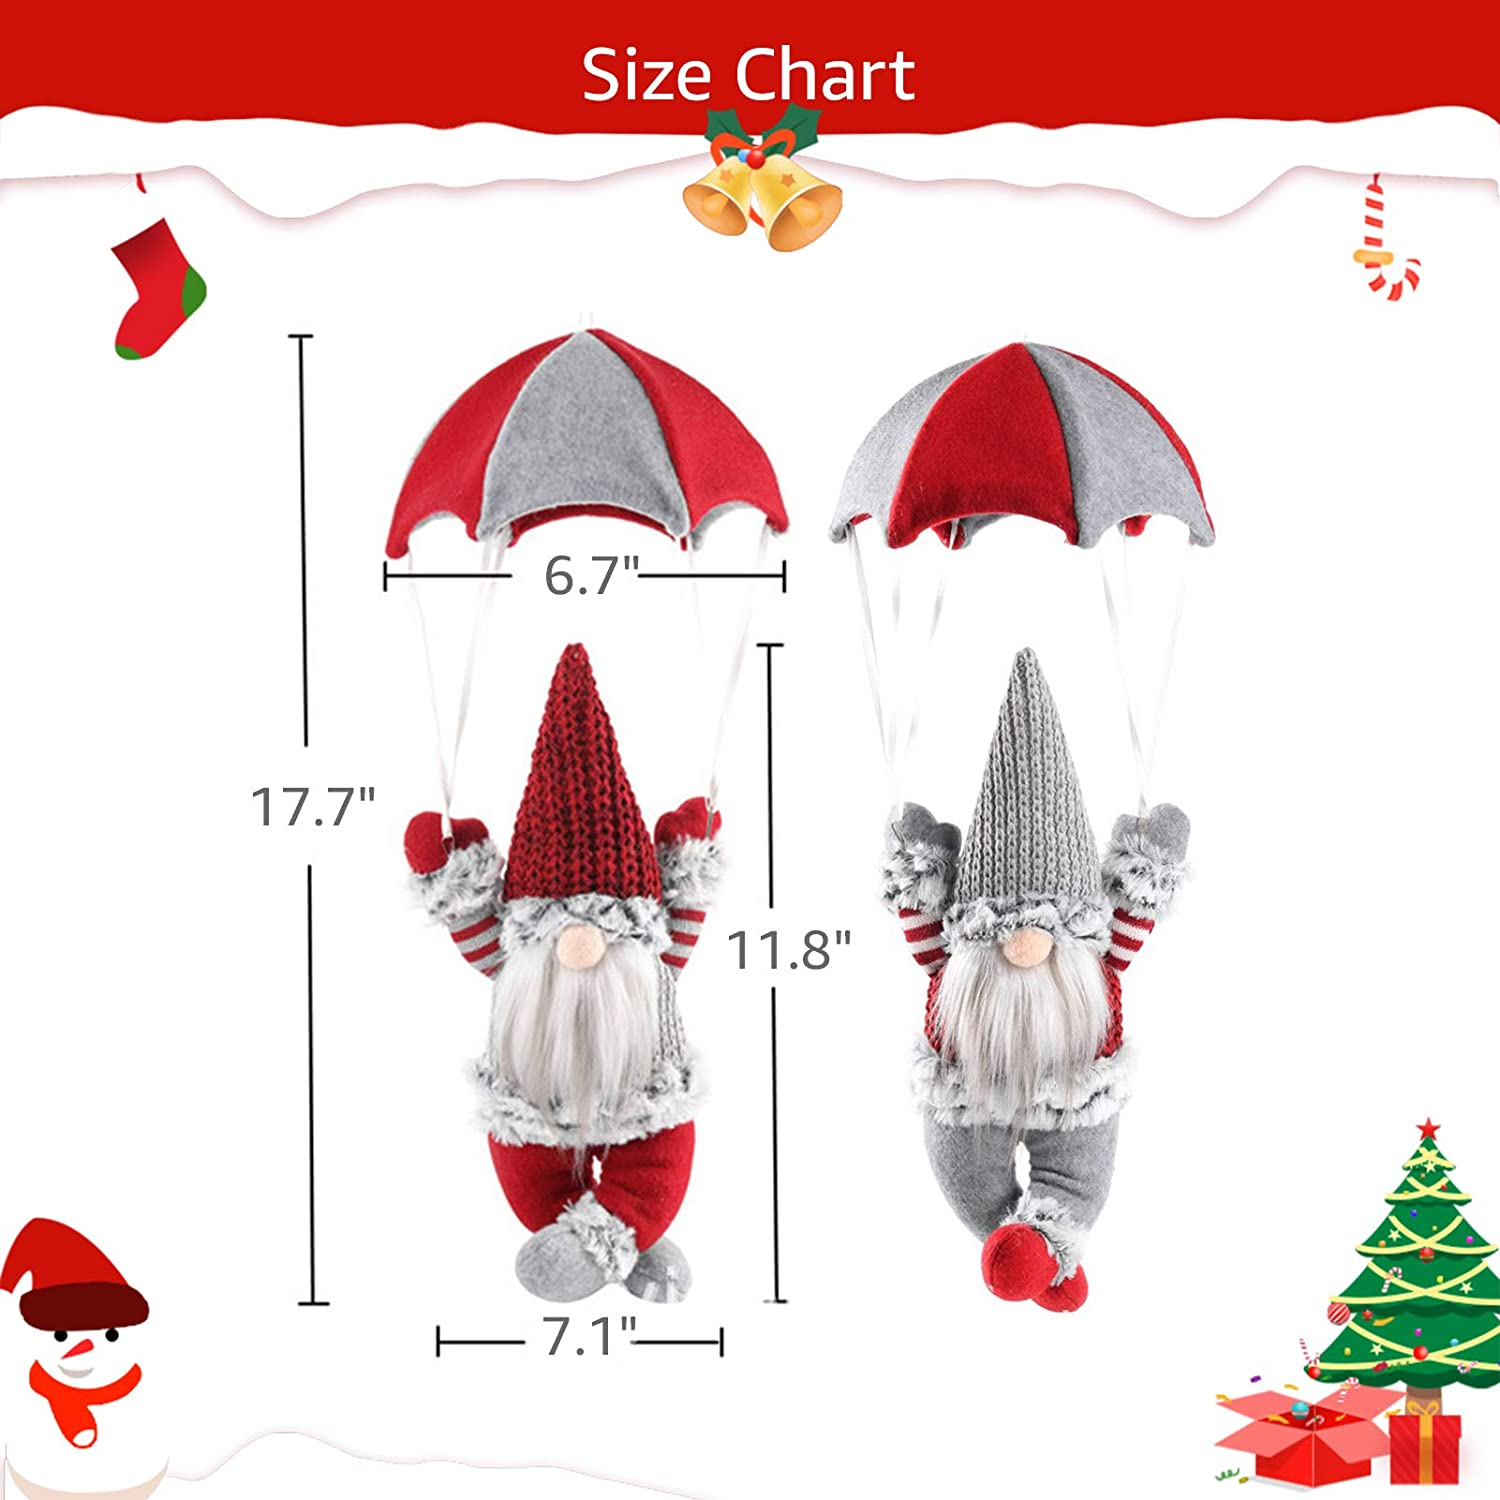 Red and Grey Patterns with Parachute 18 Holiday Gnome Plush Swedish Tomte for Indoor Outdoor ANRIU 2 PCS Gnome Christmas Decorations Hanging and Table Top Christmas Decorations